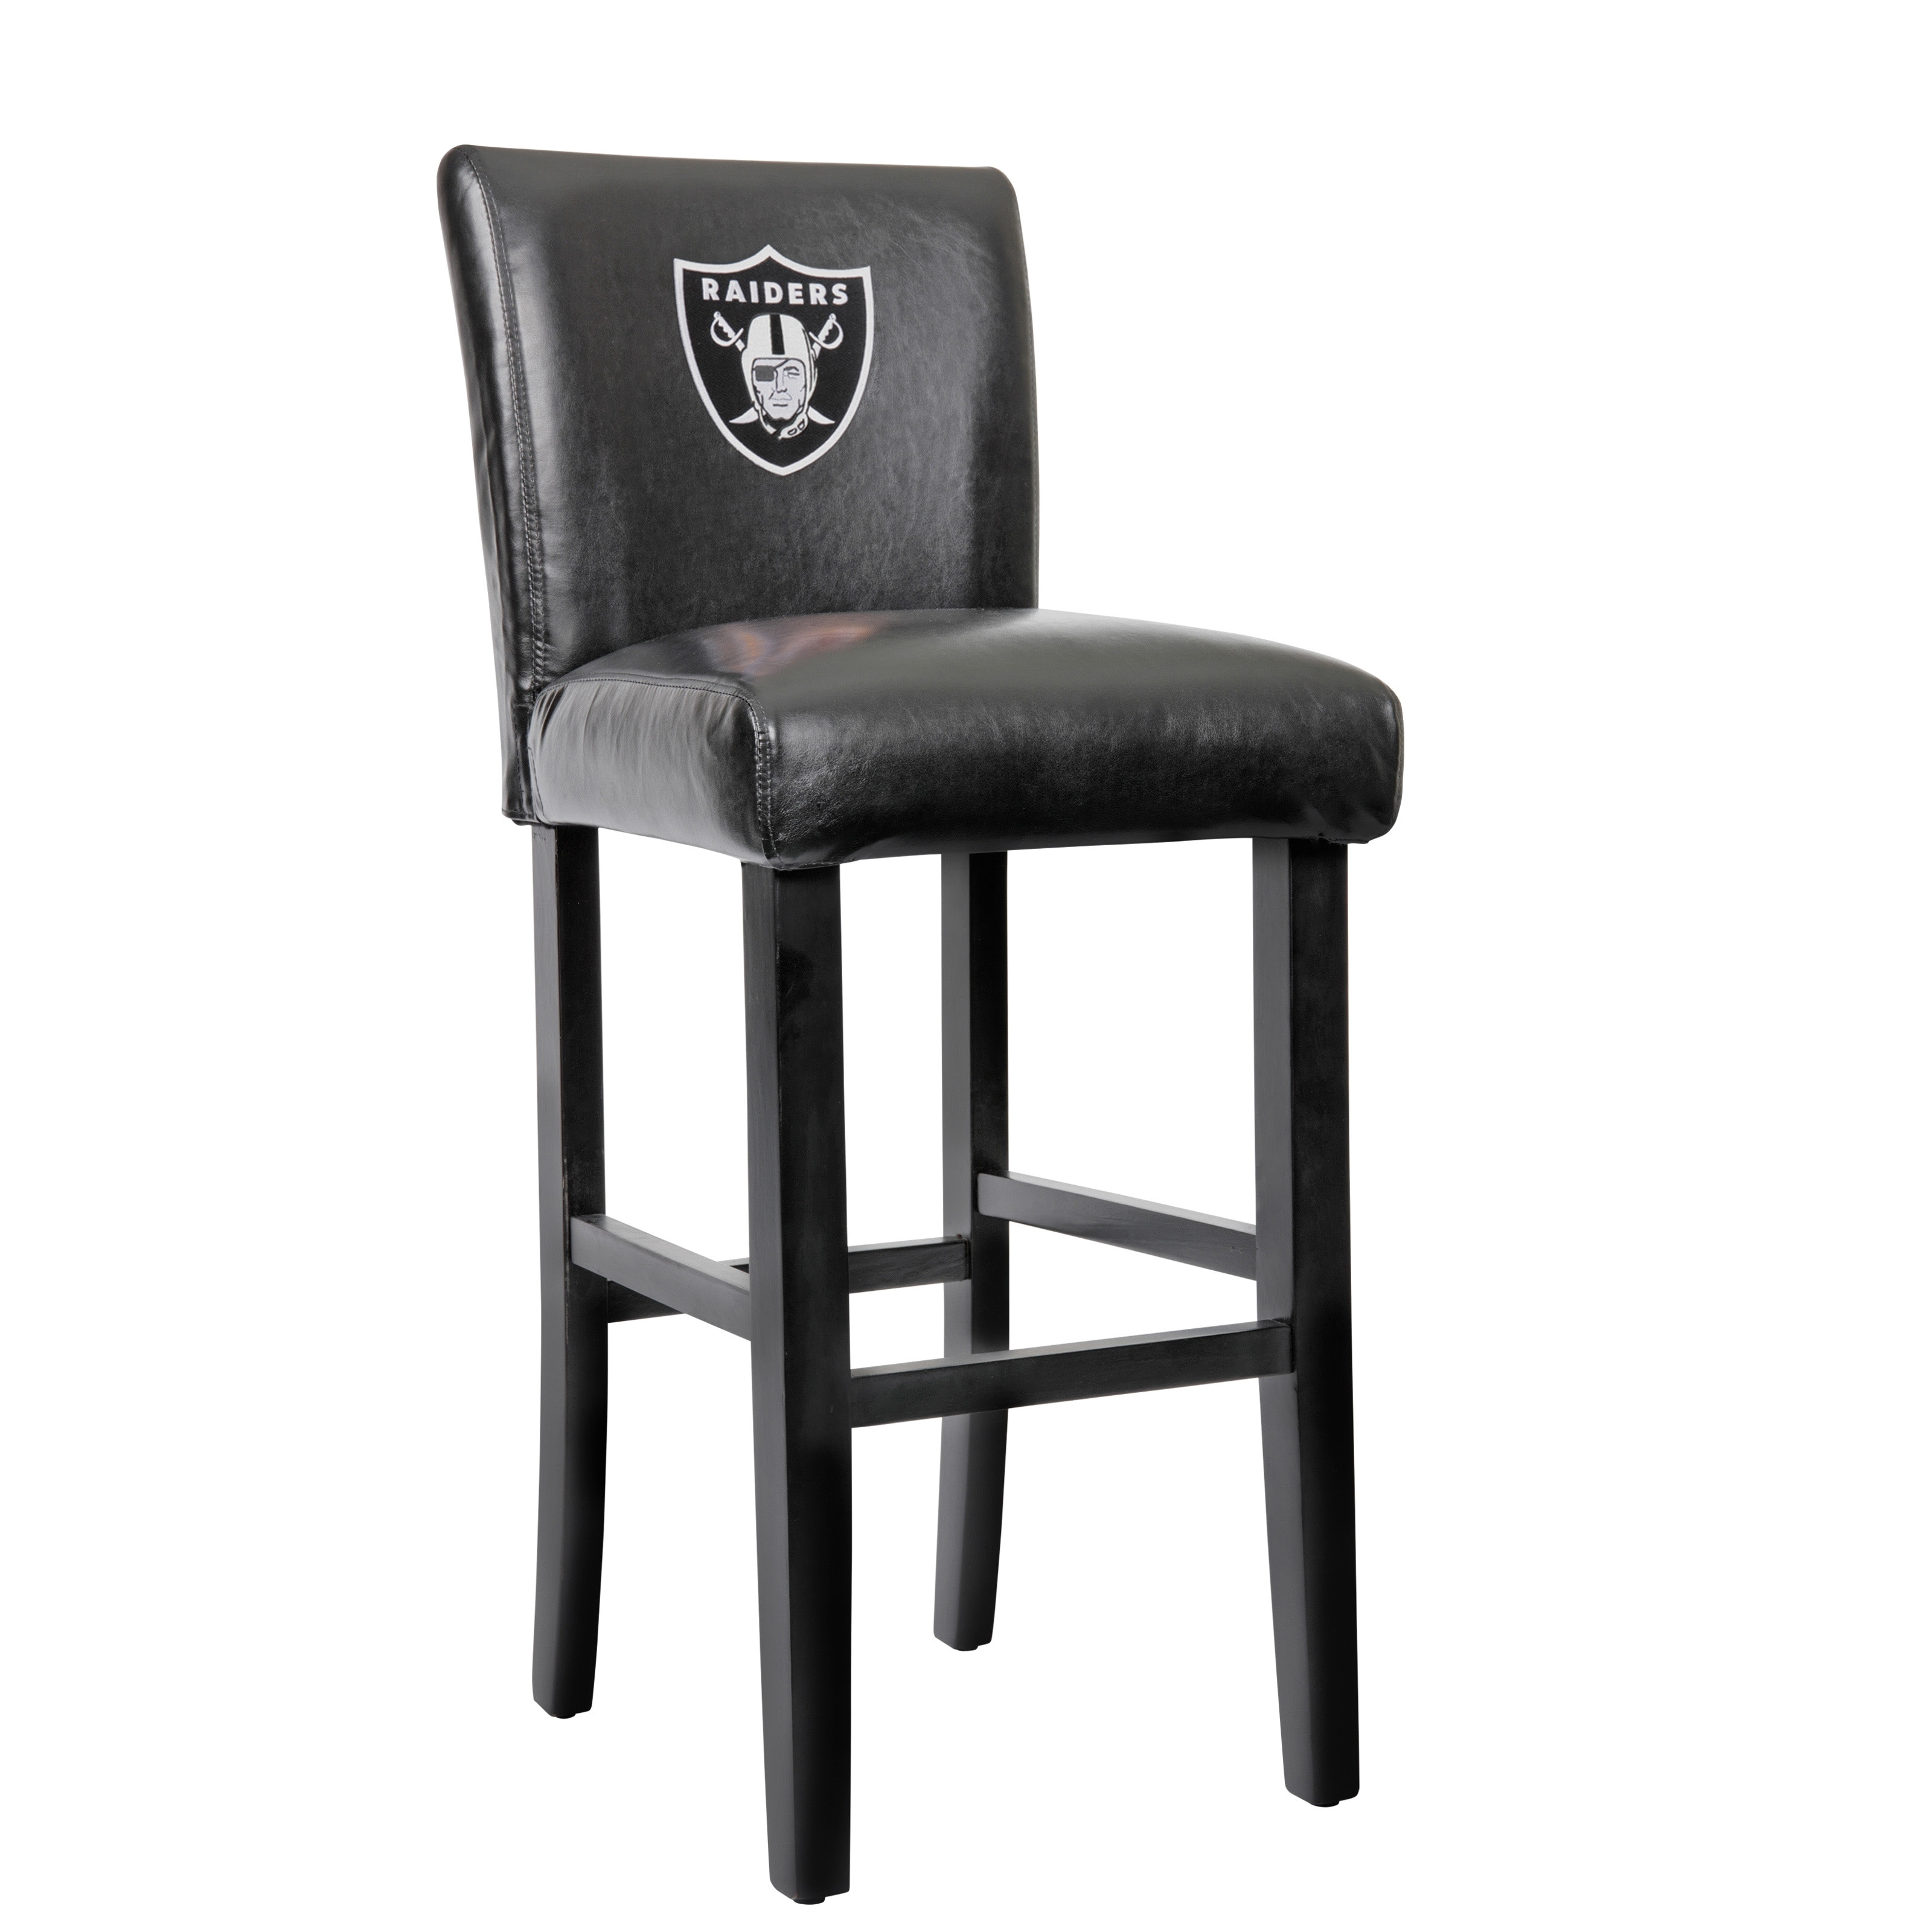 solid wood swivel bar stools collection shop oakland raiders model 30or ficially licensed 30 inch